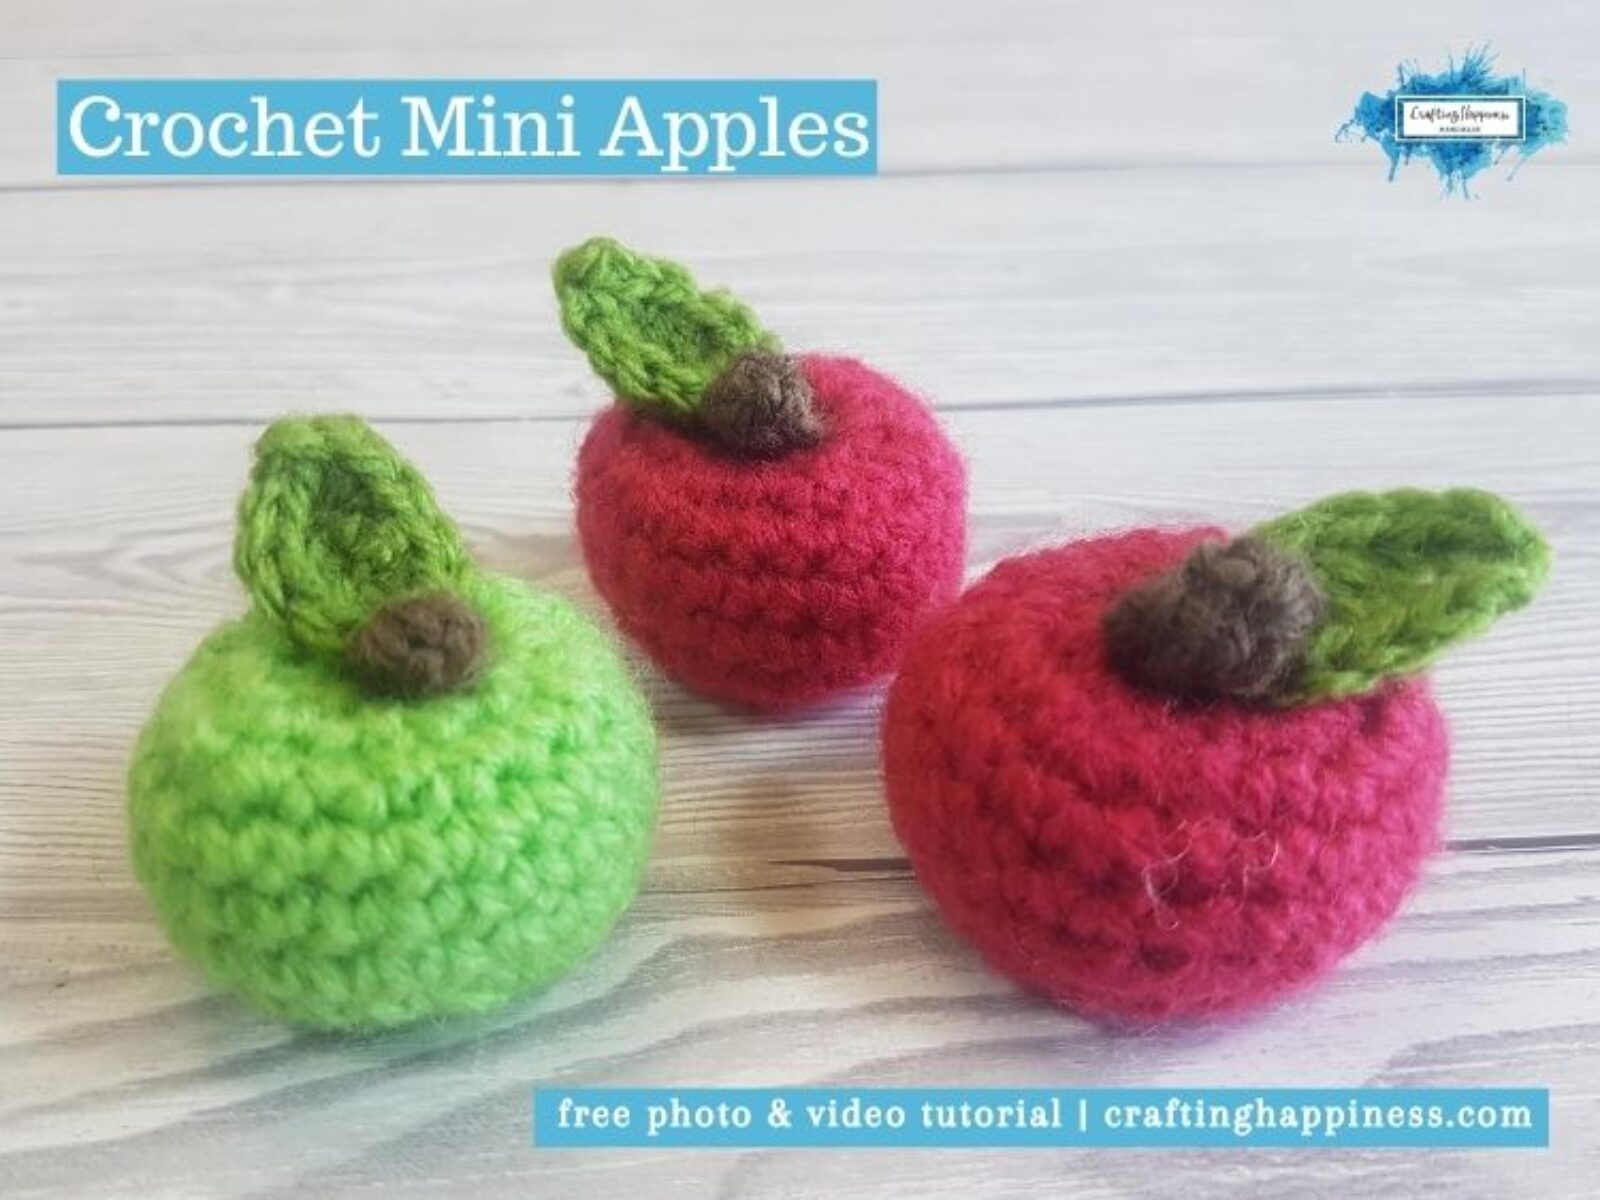 Crochet Mini Apples by Crafting Happiness FACEBOOK POSTER